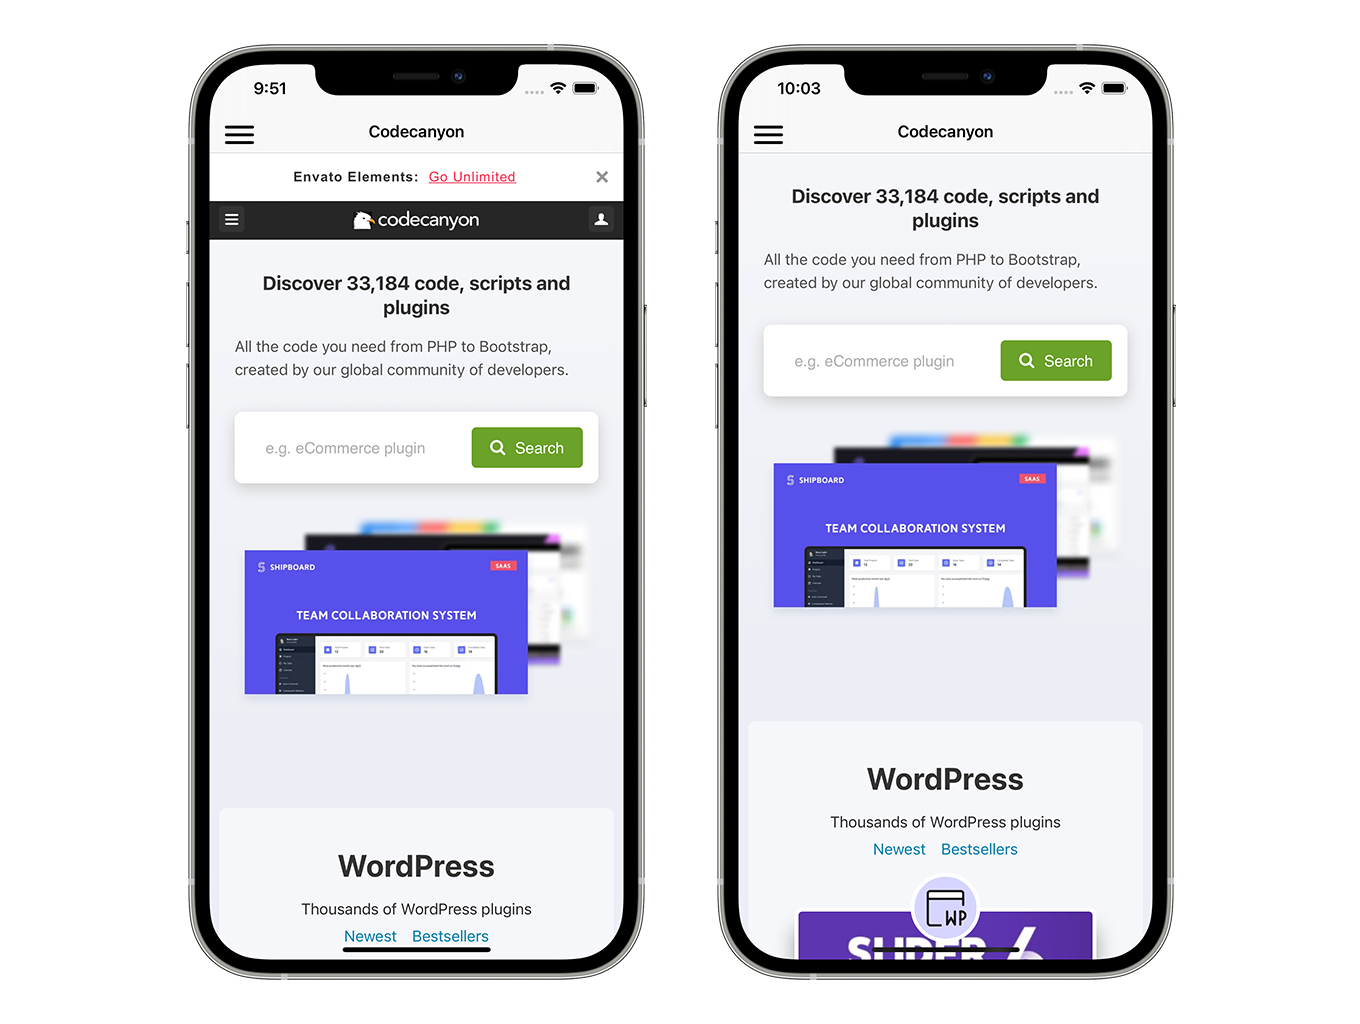 SwiftUI WebView App | Full iOS Application - 2